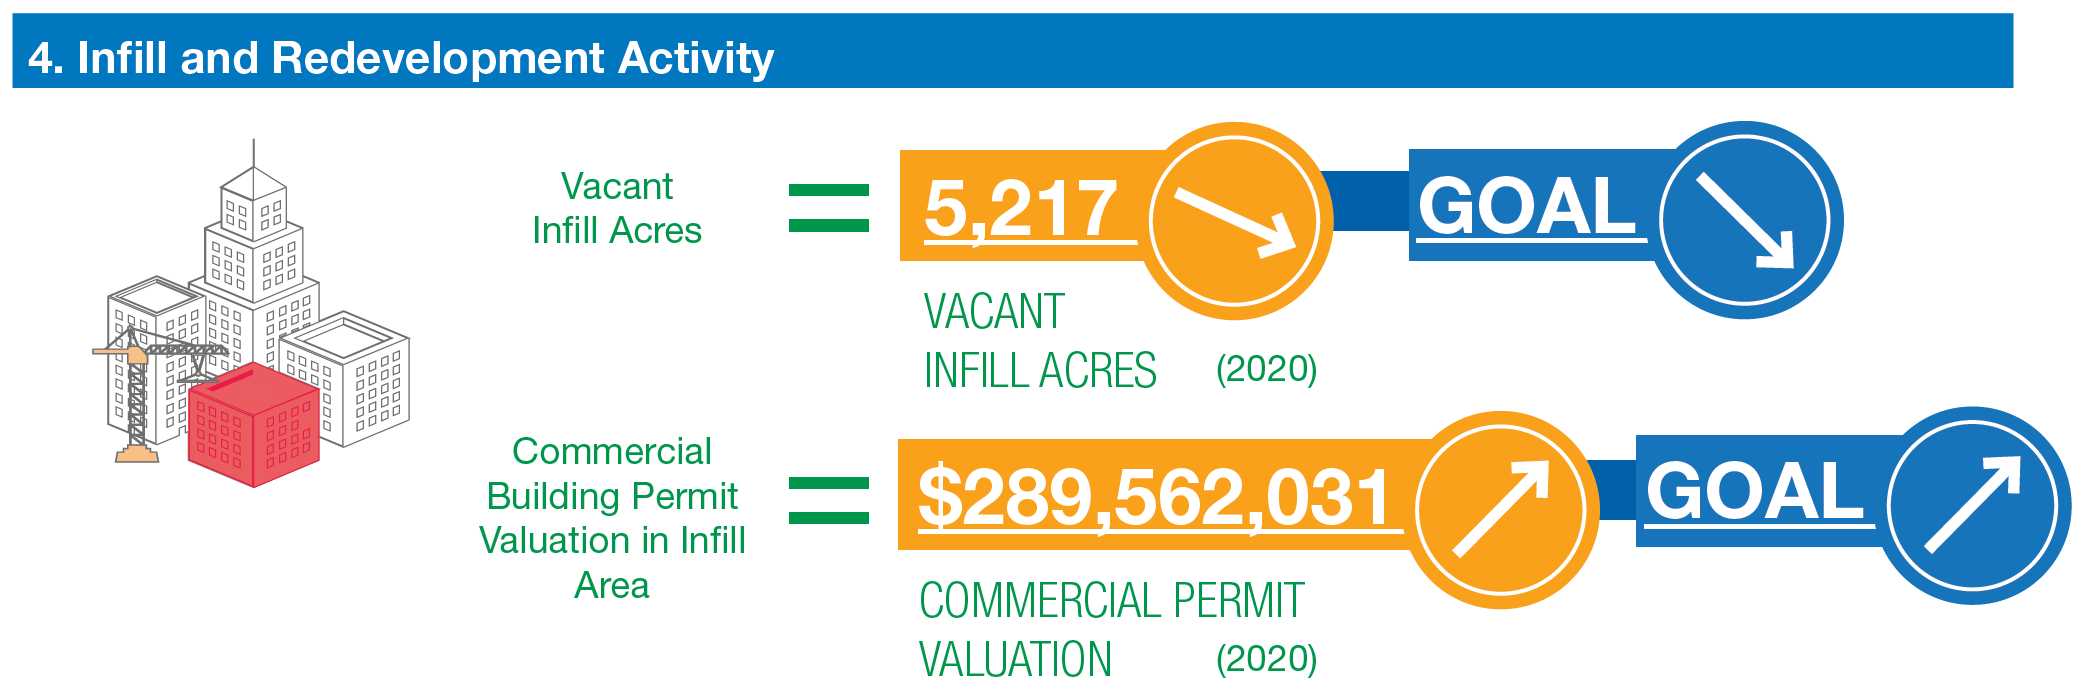 infill and redevelopment activity. number vacant infill acres 5,217. trending down. goal to decrease. commercial building permit valuation in infill area $289,562,031 trending up. goal to increase